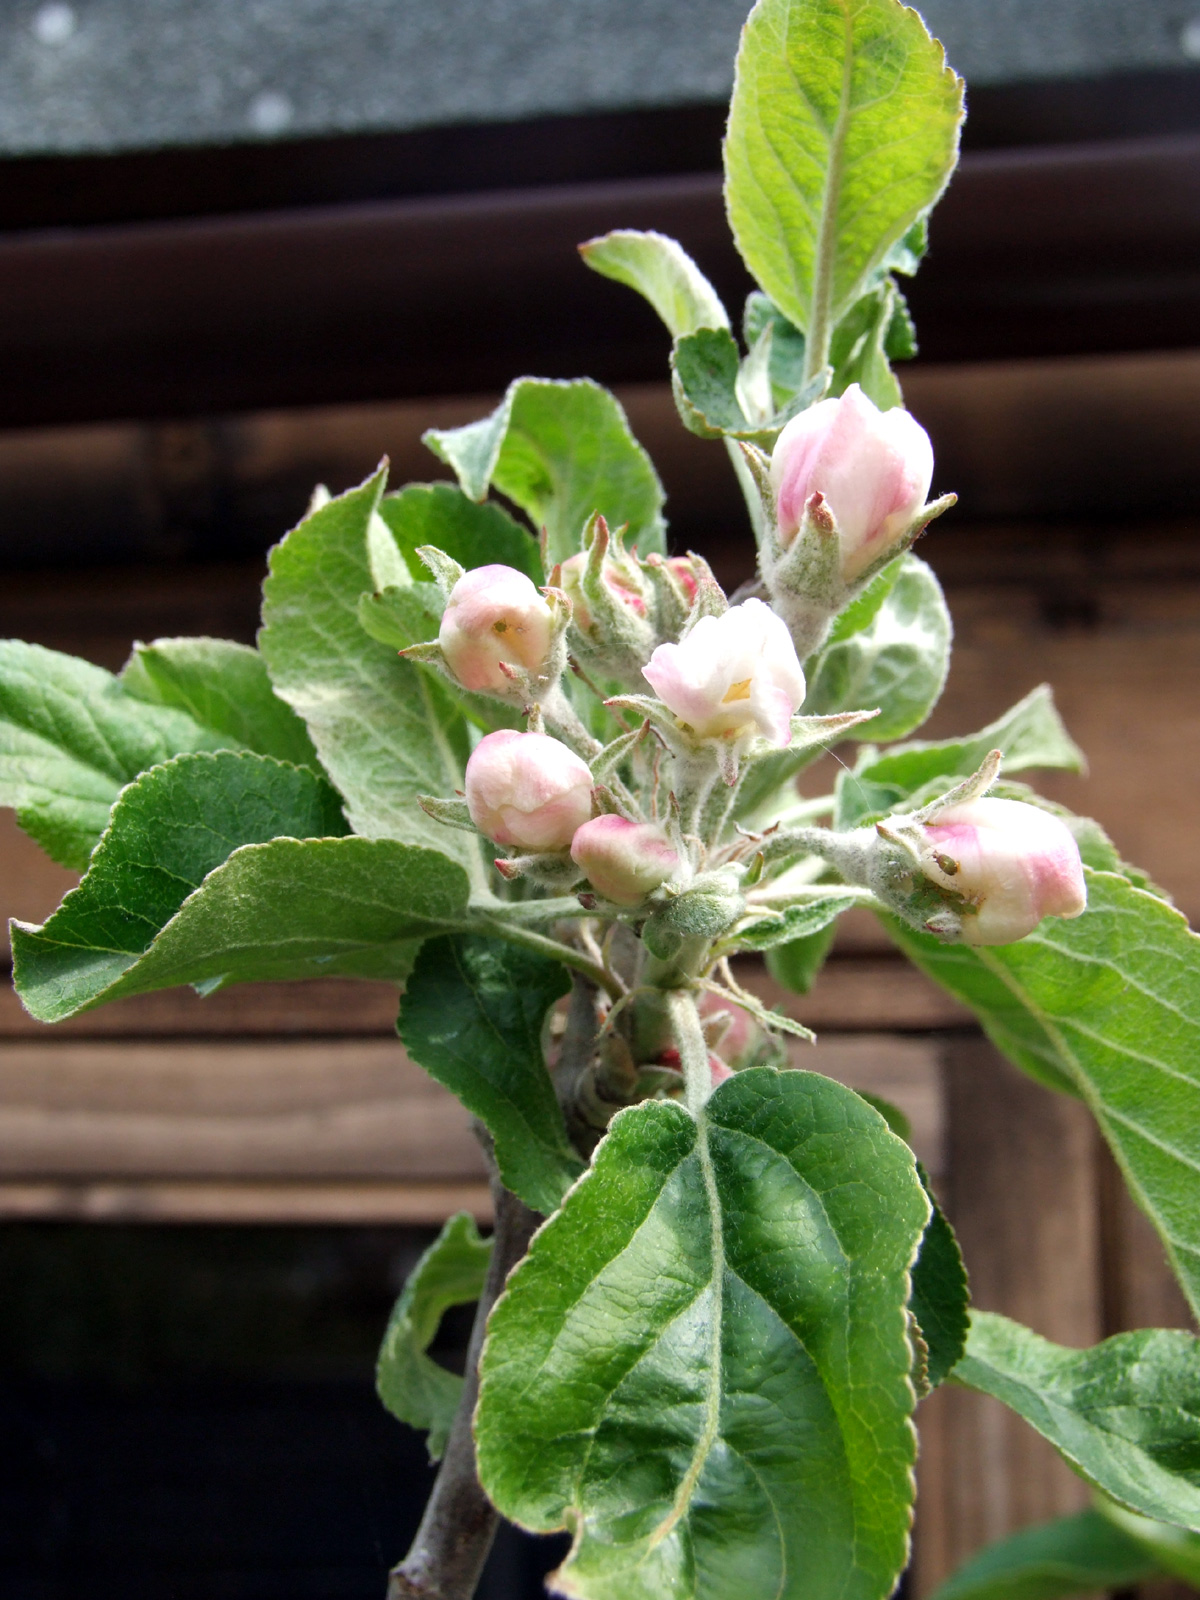 April 2017 Cornish Aromatic buds